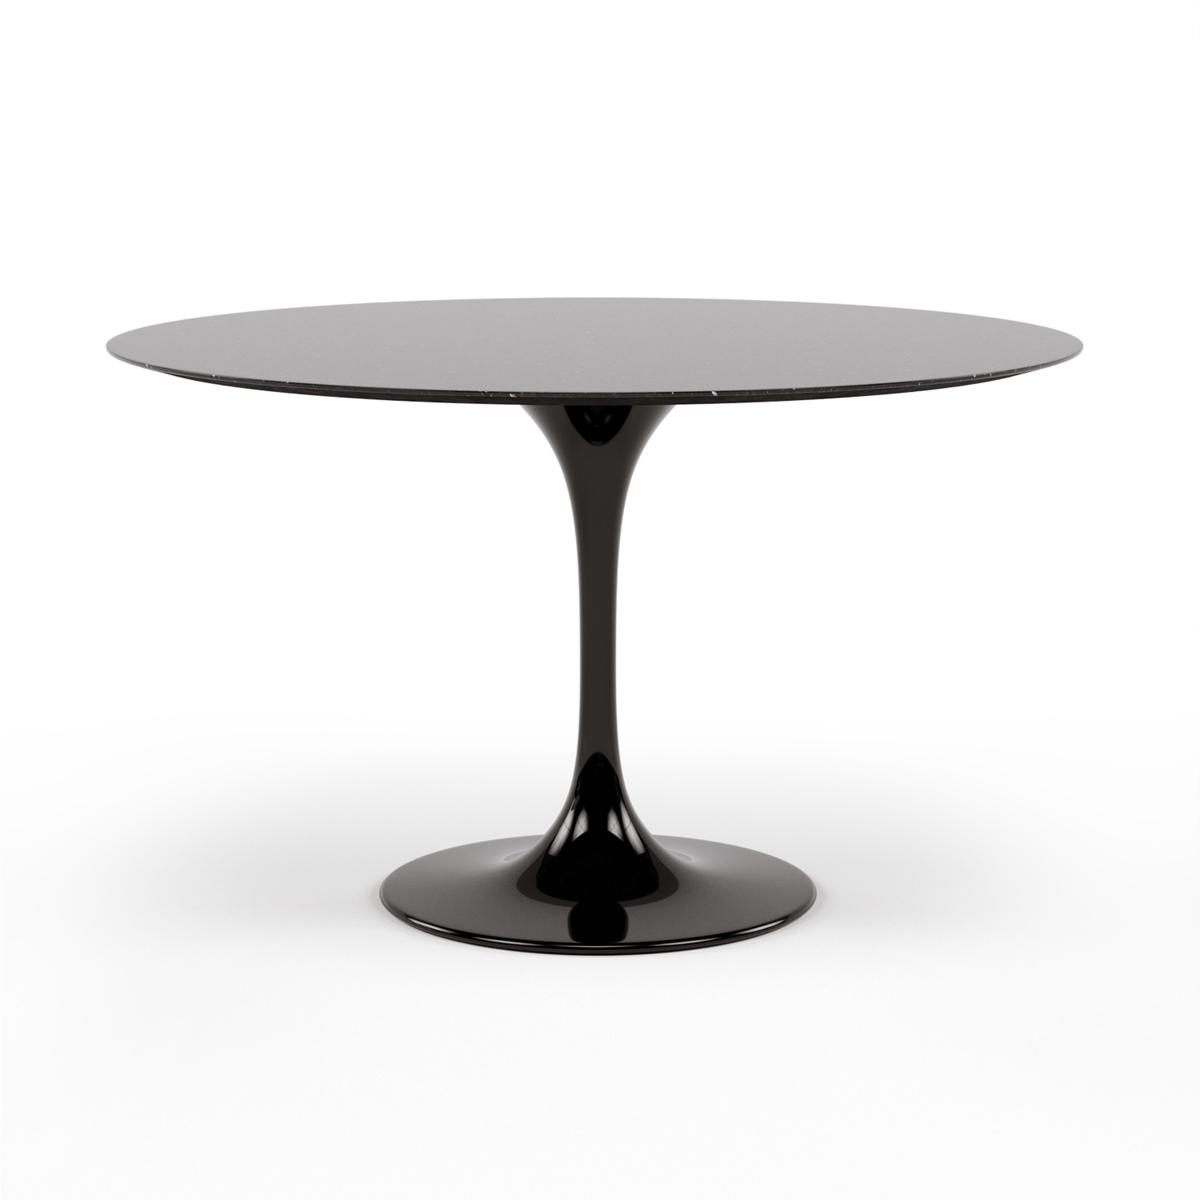 Saarinen Tulip Round Marble Dining Table - Eames marble table